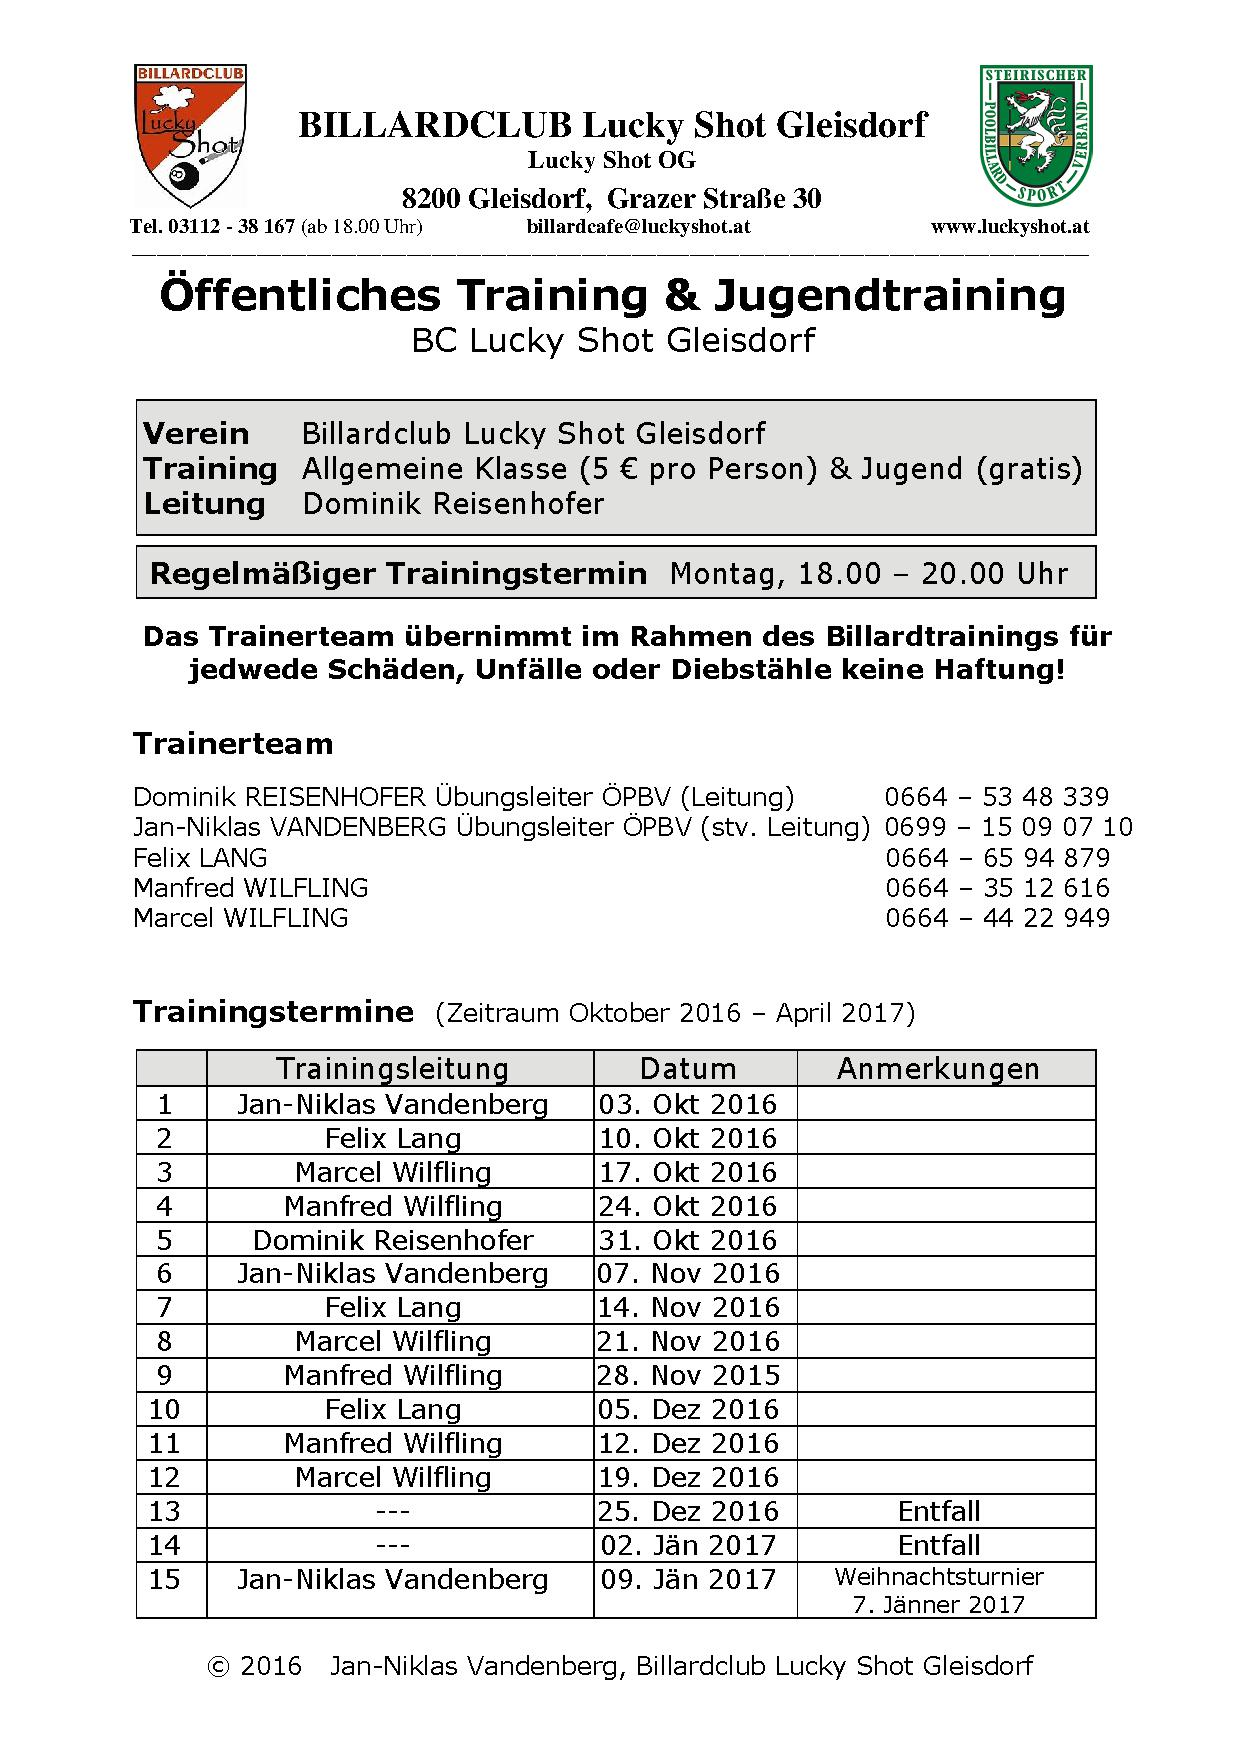 BC Lucky Shot Jugendtraining Dienstplan 4 September 2016 neu